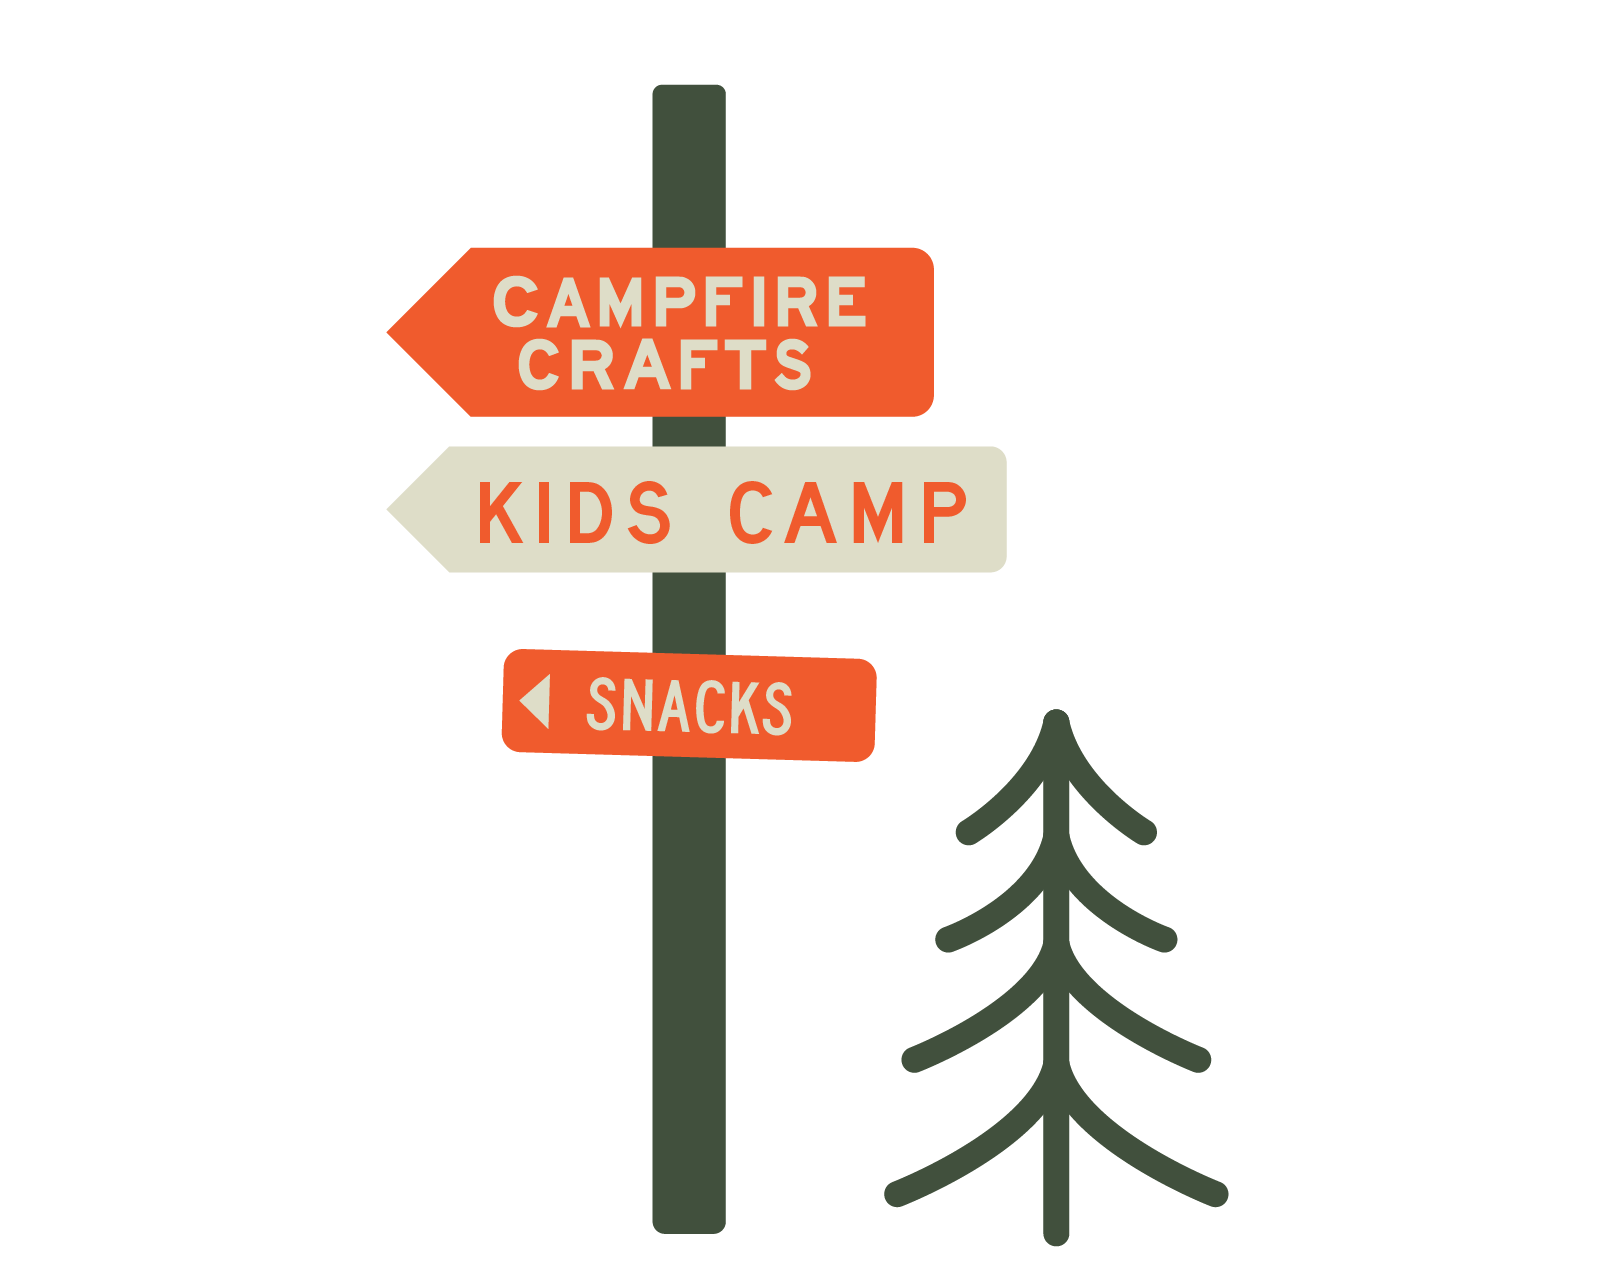 pcr-summercamp-webgraphic-kidssigns@2x.png